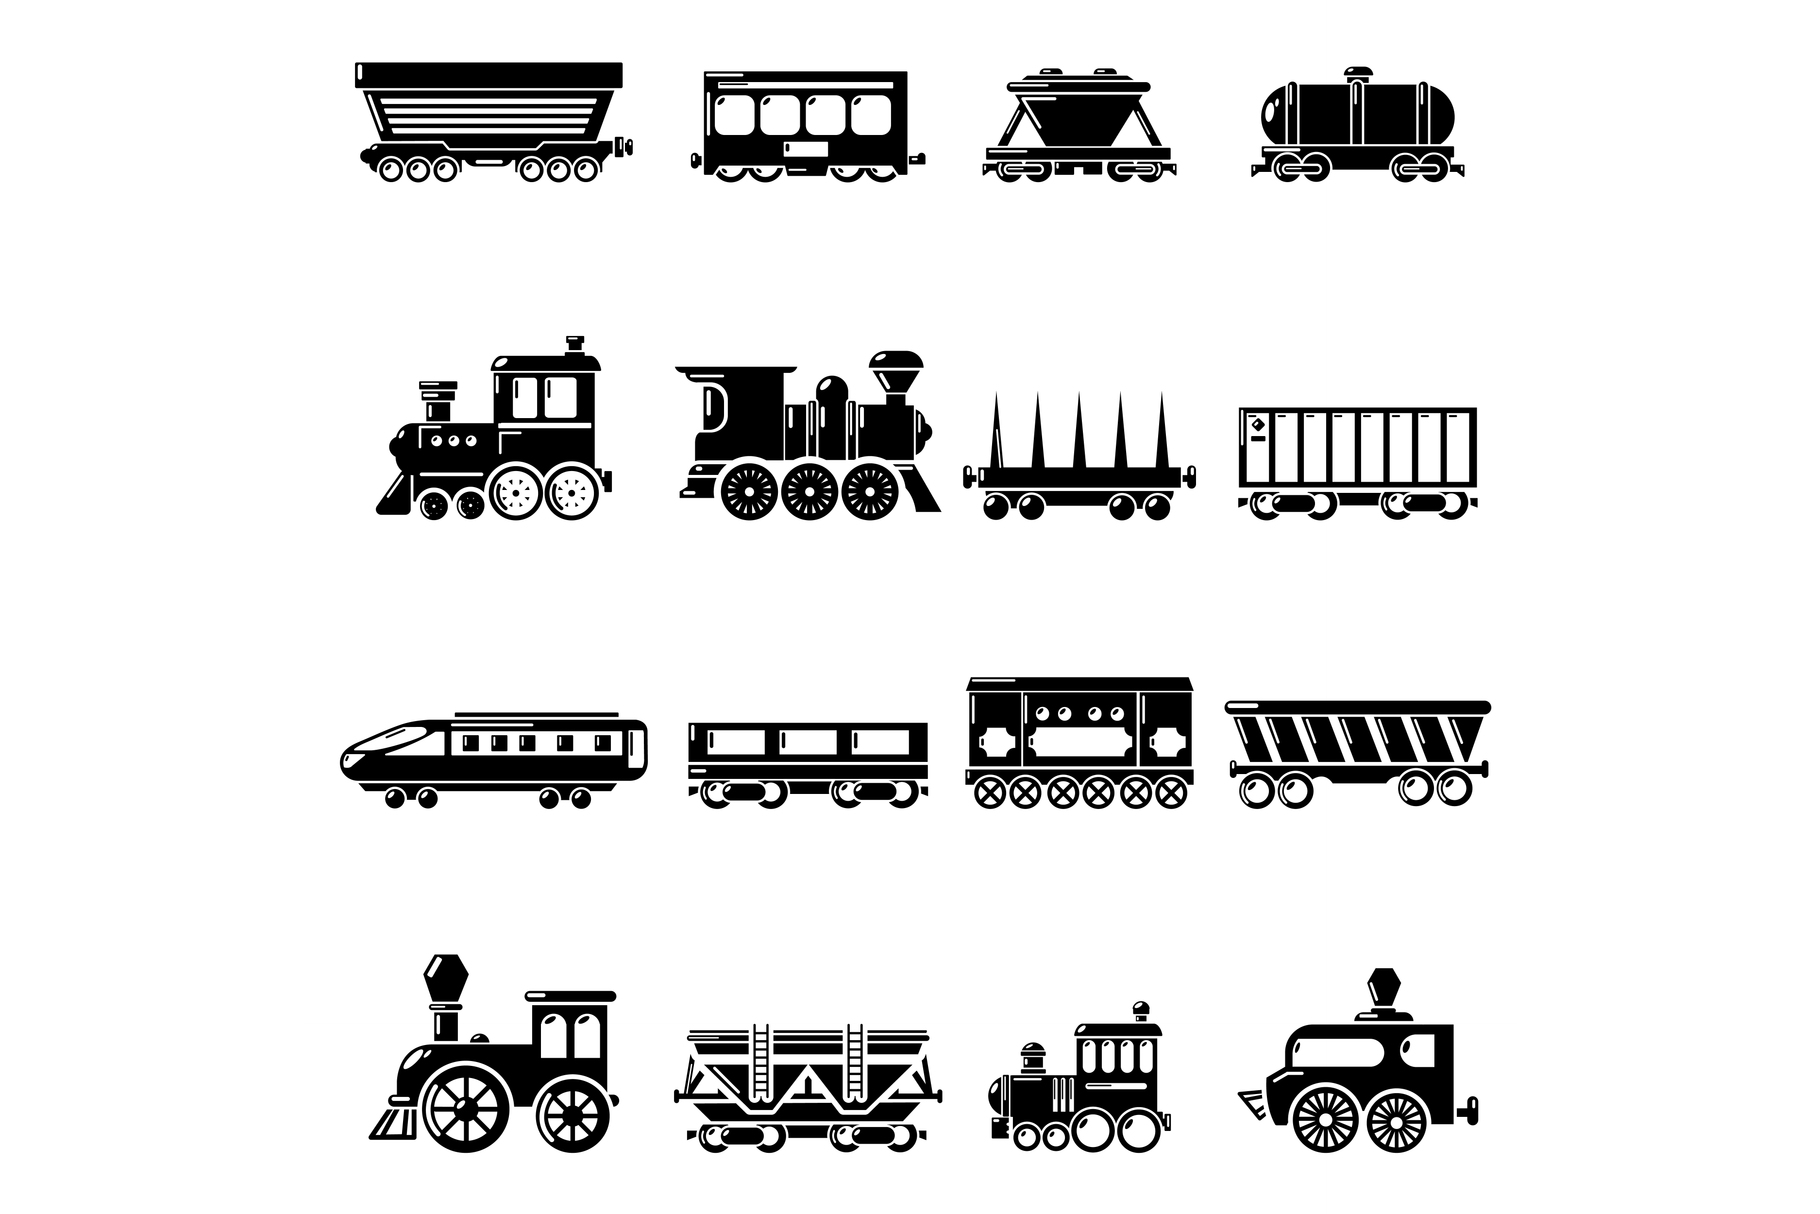 Railway carriage icons set, simple style example image 1